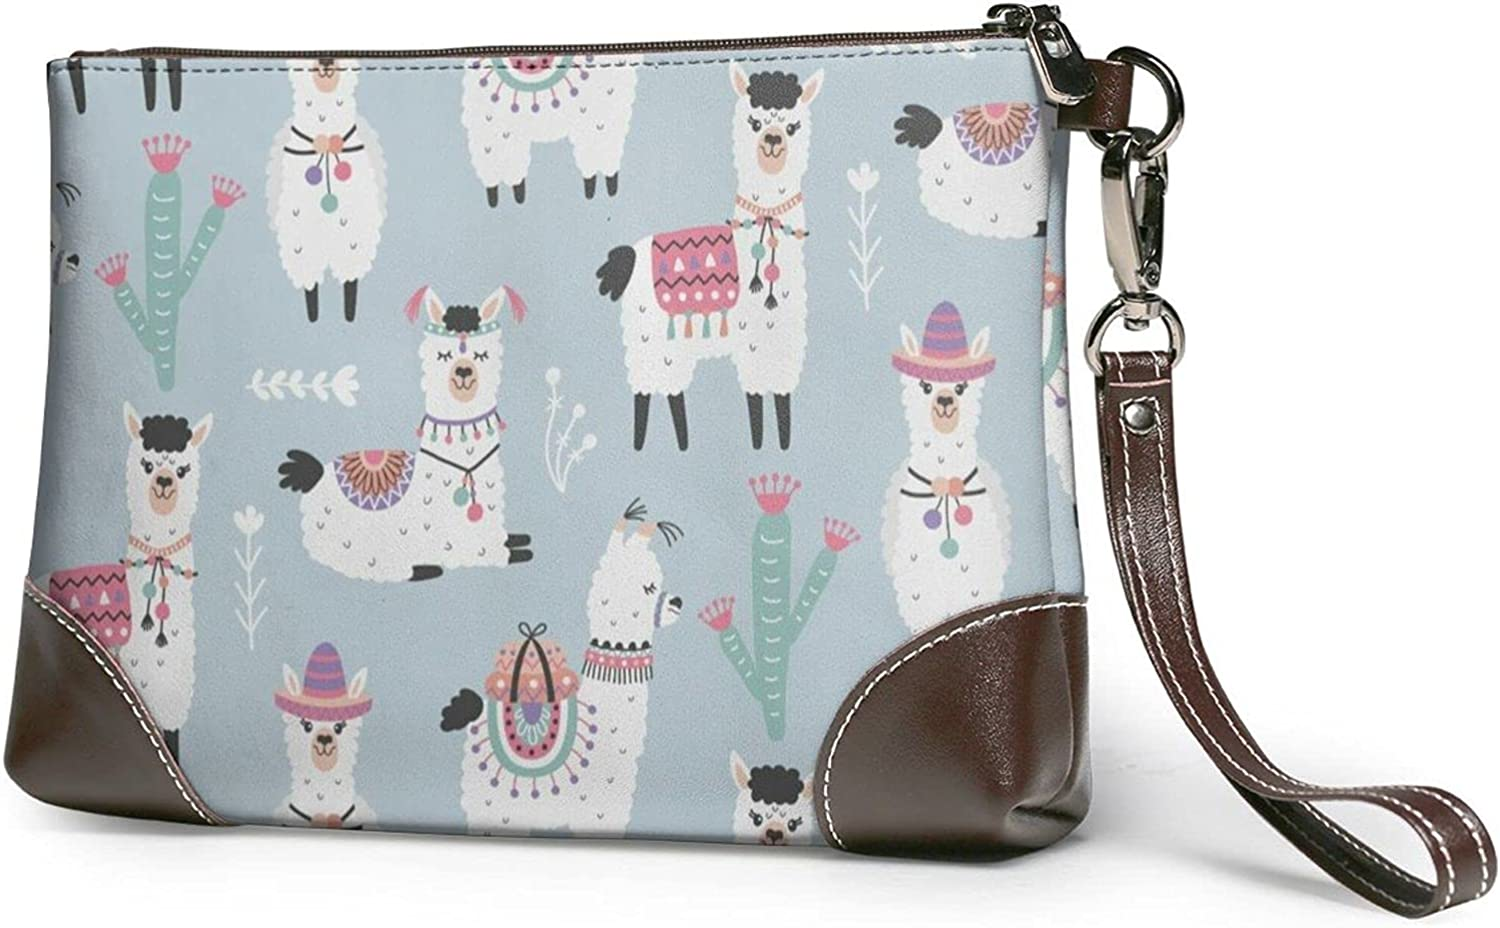 Cute Alpaca Clutch Purse Travel Wallet Free shipping / New Wri Sale SALE% OFF Zipper Party Bag With